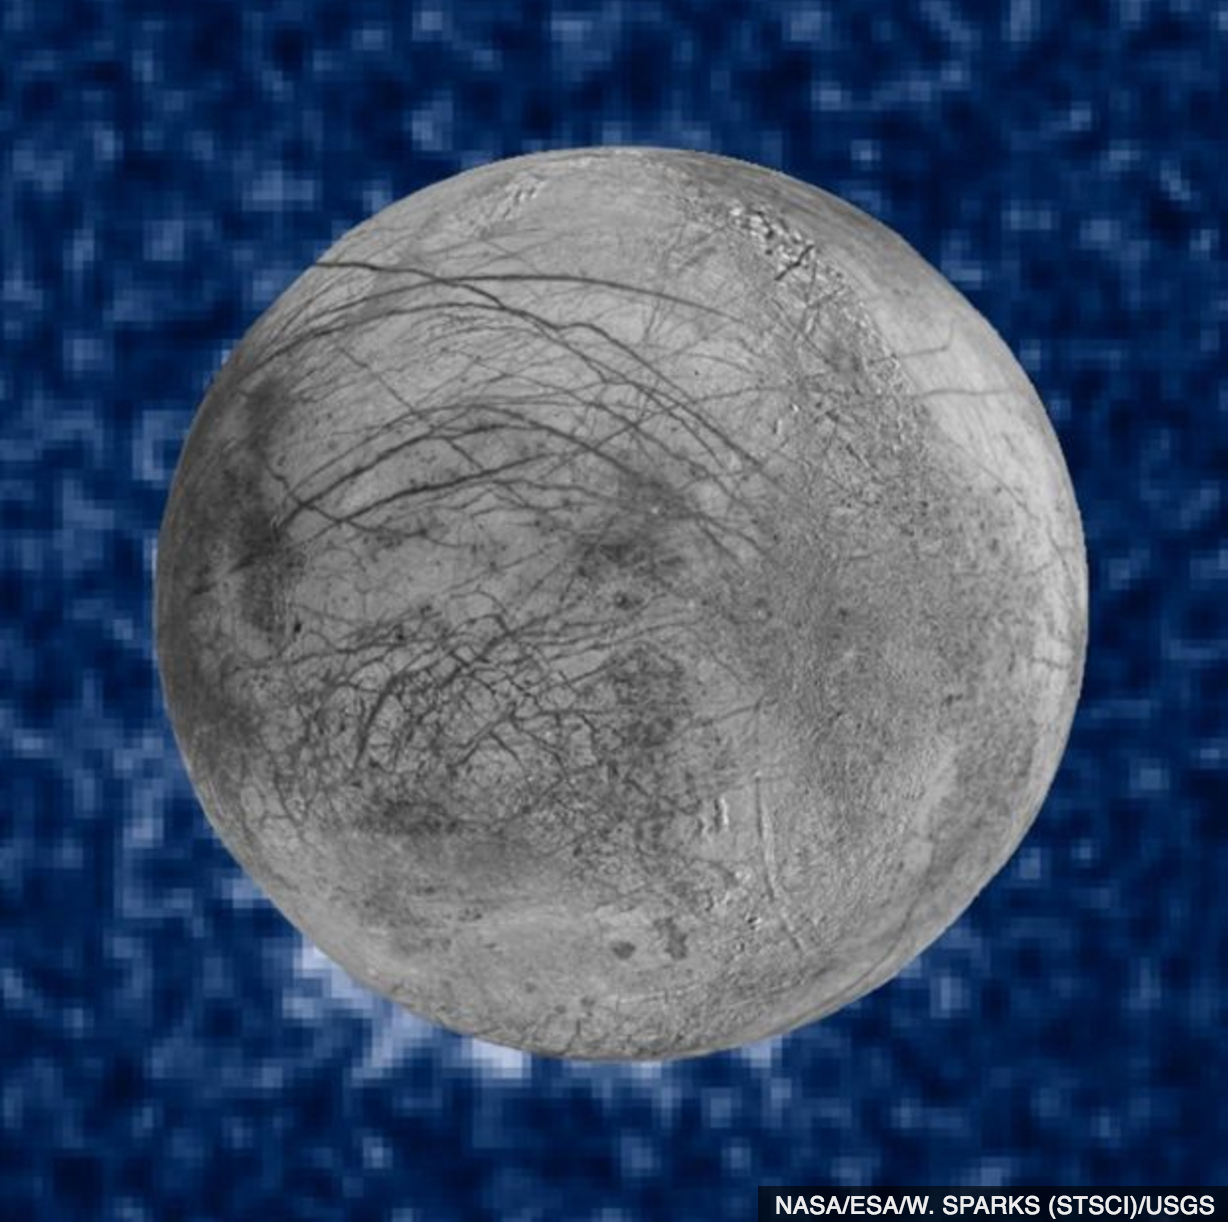 Suspected plumes of water erupting at the 7 o'clock position at the Saturn;s icy moon Europa.